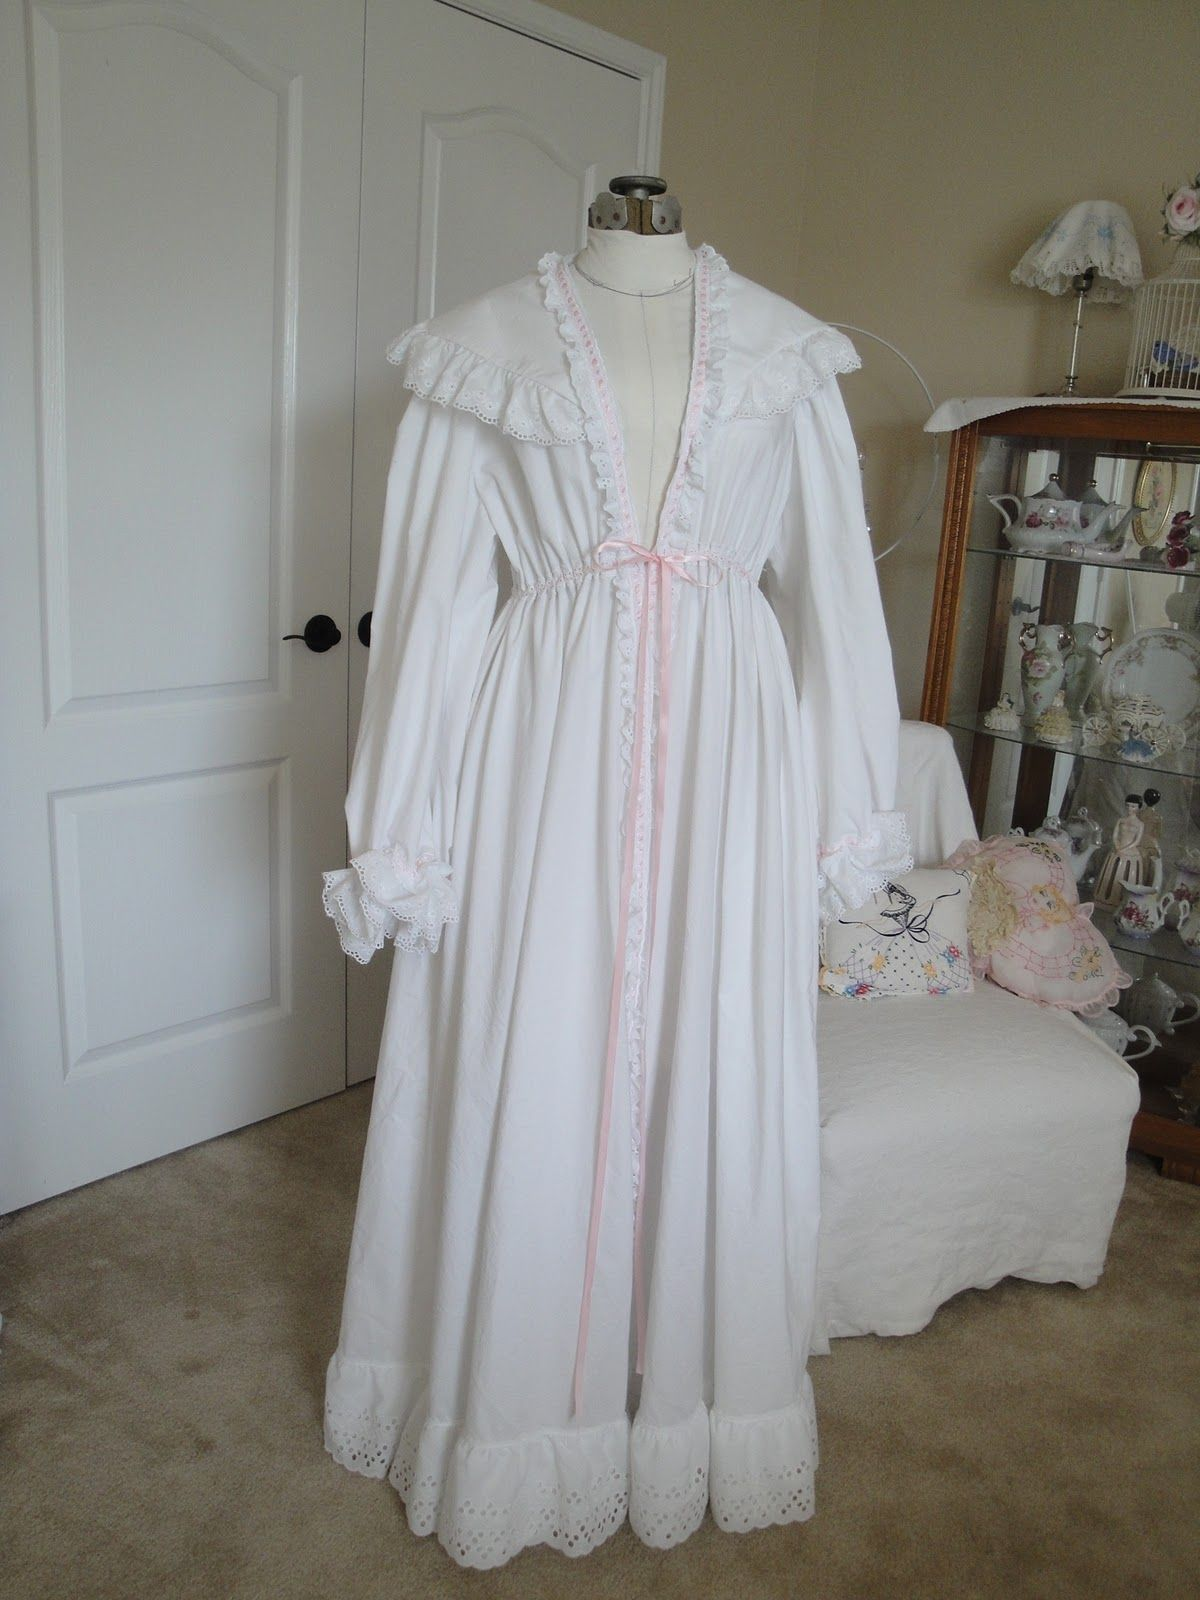 Victorian Nightgown Patterns It 39 S Not Even Close To Being Authentic In Design But Still It